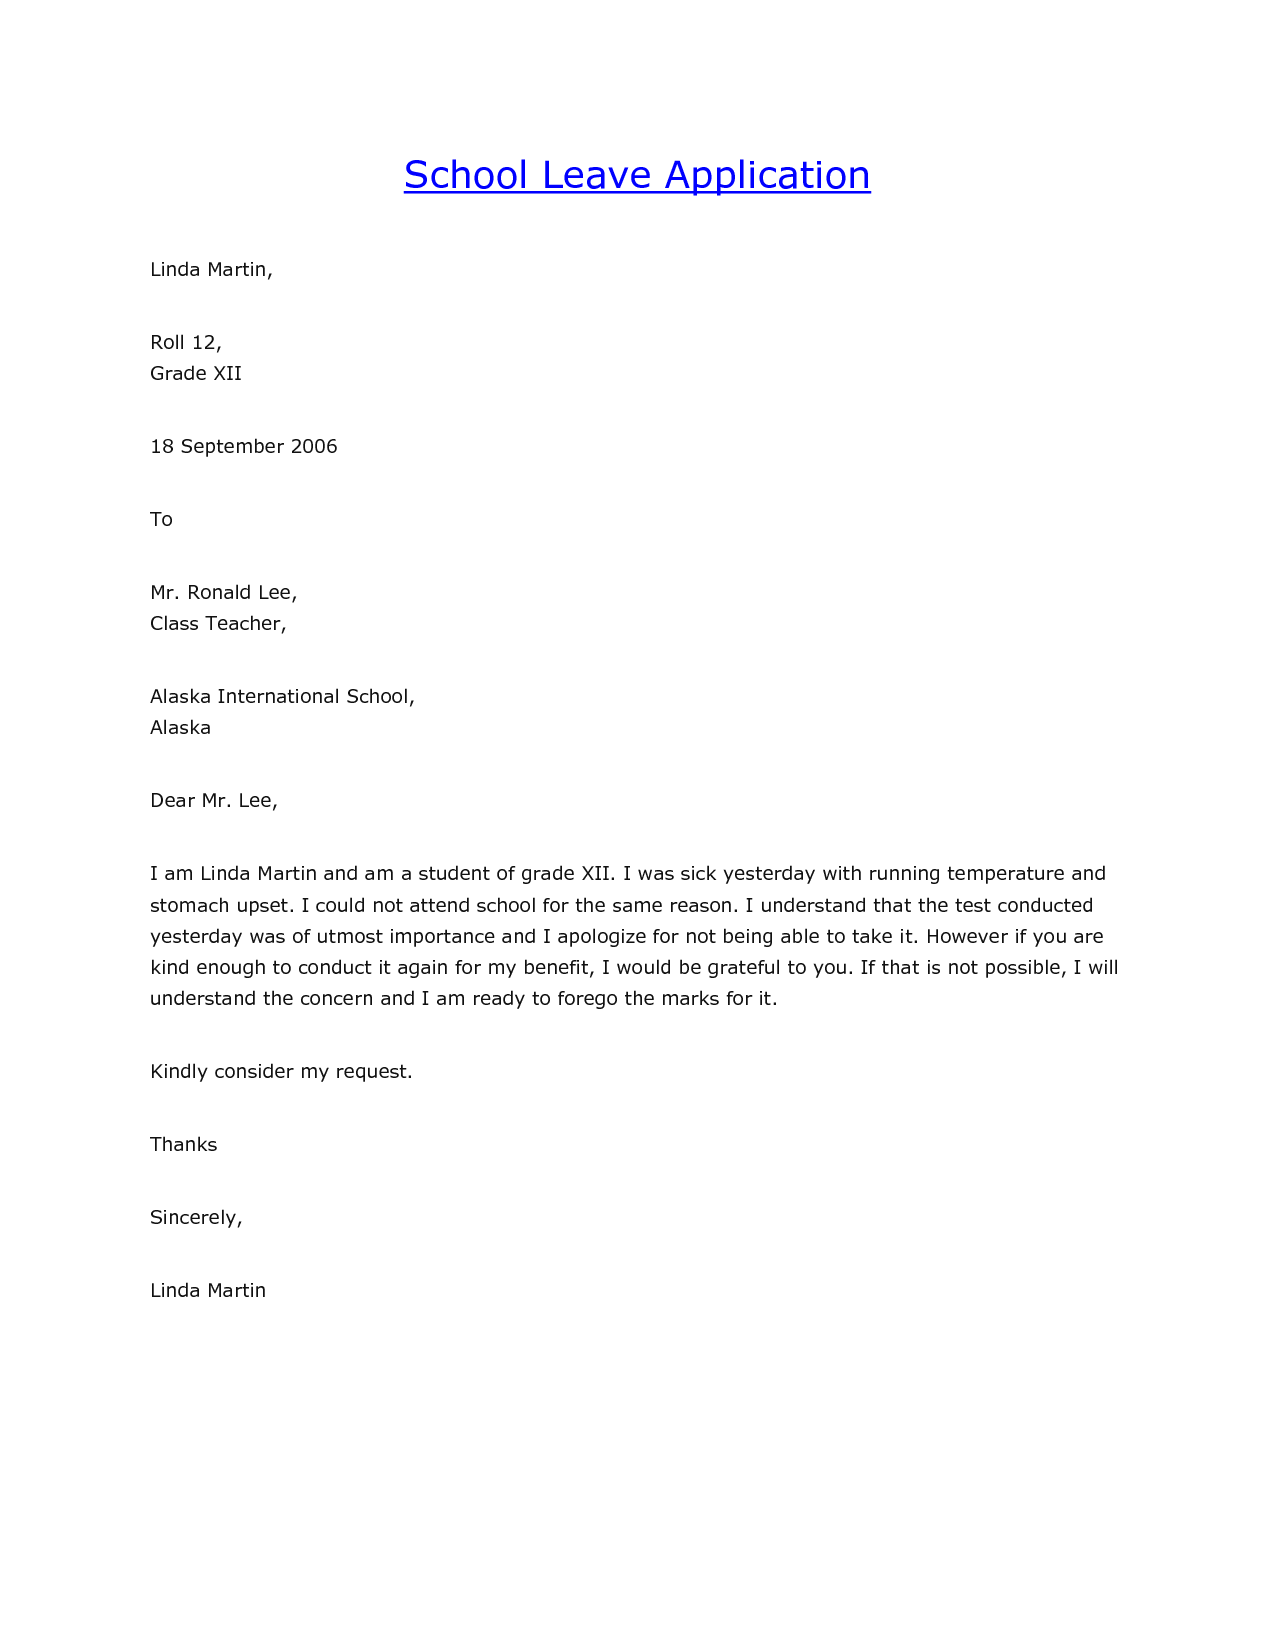 leave application letter related keywords and suggestions format – Sample Application for Leave from School